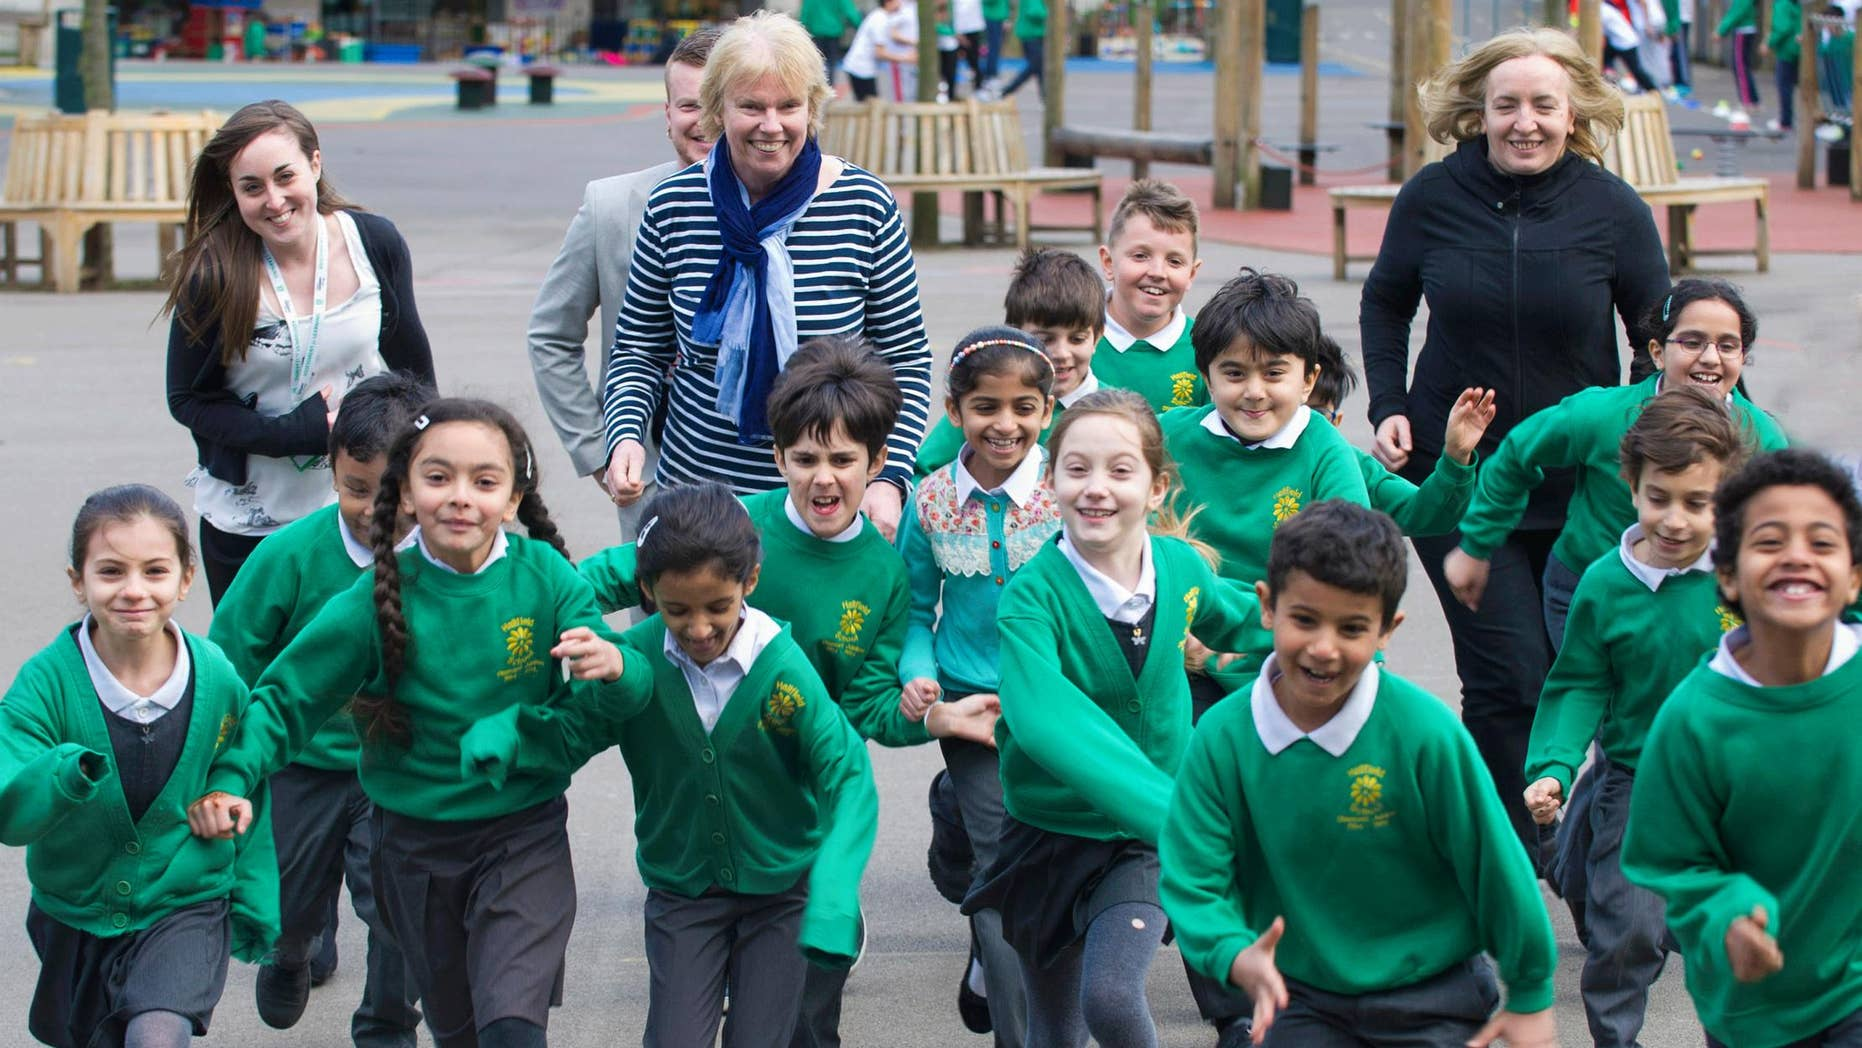 At the national launch of The Daily Mile in March 2016, founder Elaine Wyllie (center) runs with children at Hallfield Primary School in London.